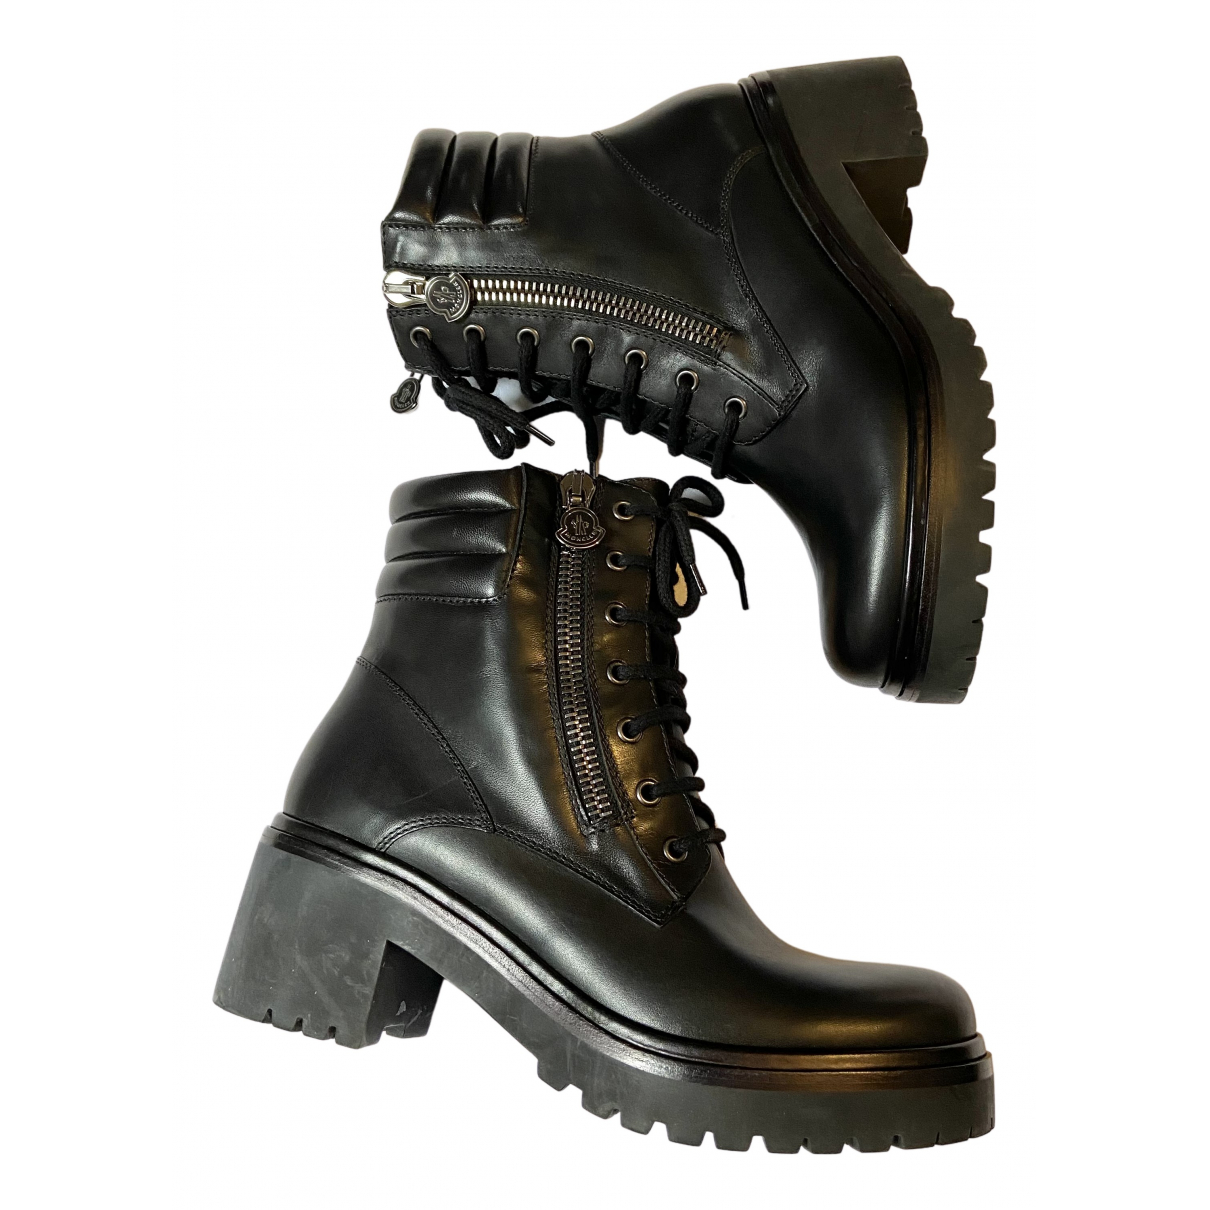 Moncler N Black Leather Boots for Women 39 EU